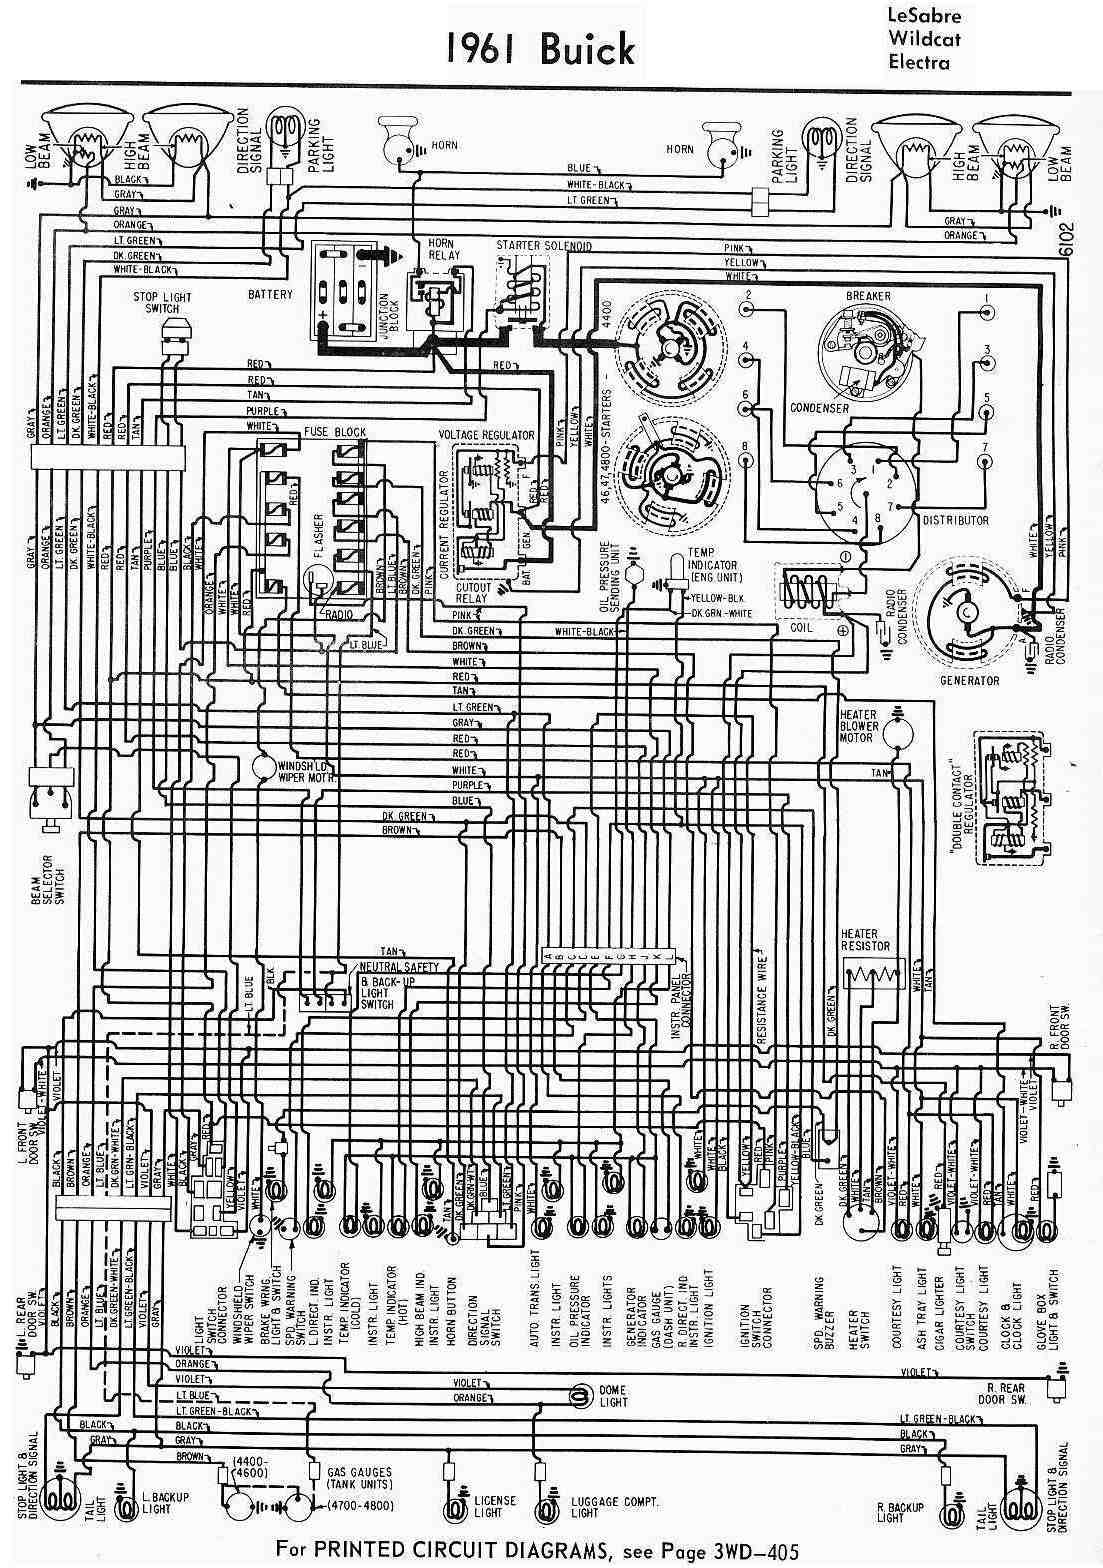 2011 | All about Wiring Diagrams